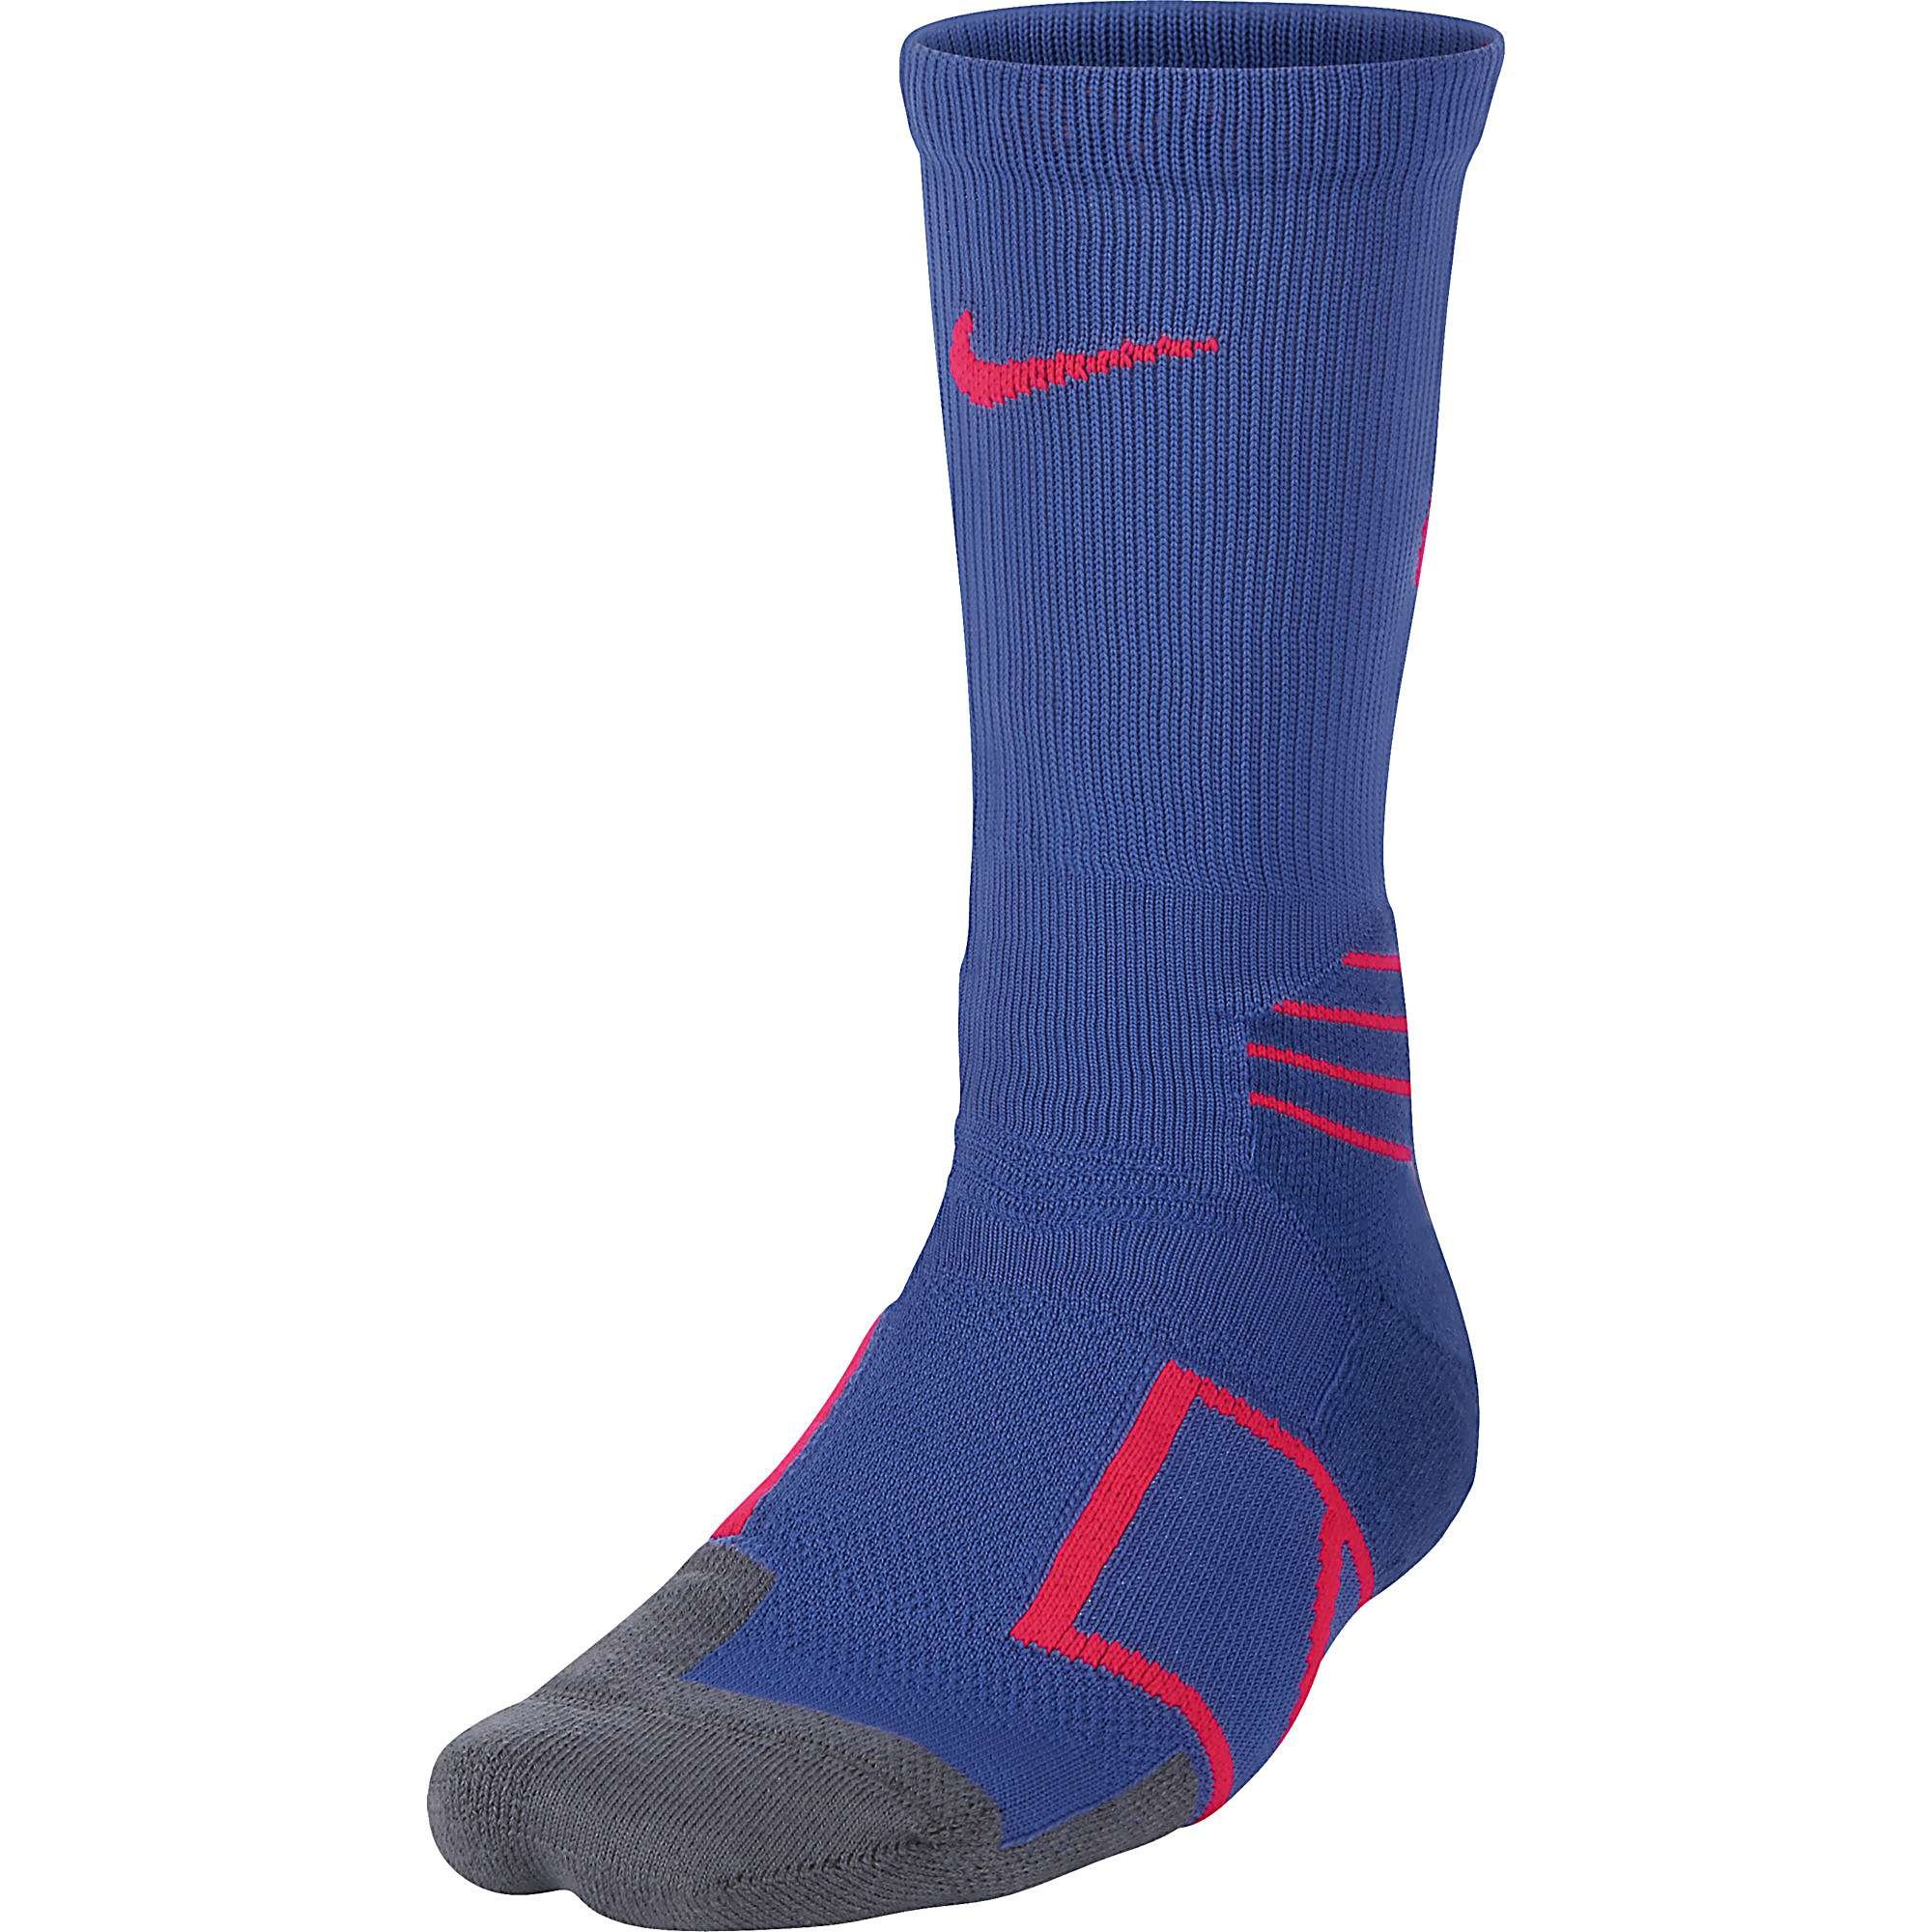 574ec6d2e57f Get Quotations · Nike Mens Elite Vapor Baseball Crew Socks Game Royal Solar  Red SX4843-464 sz